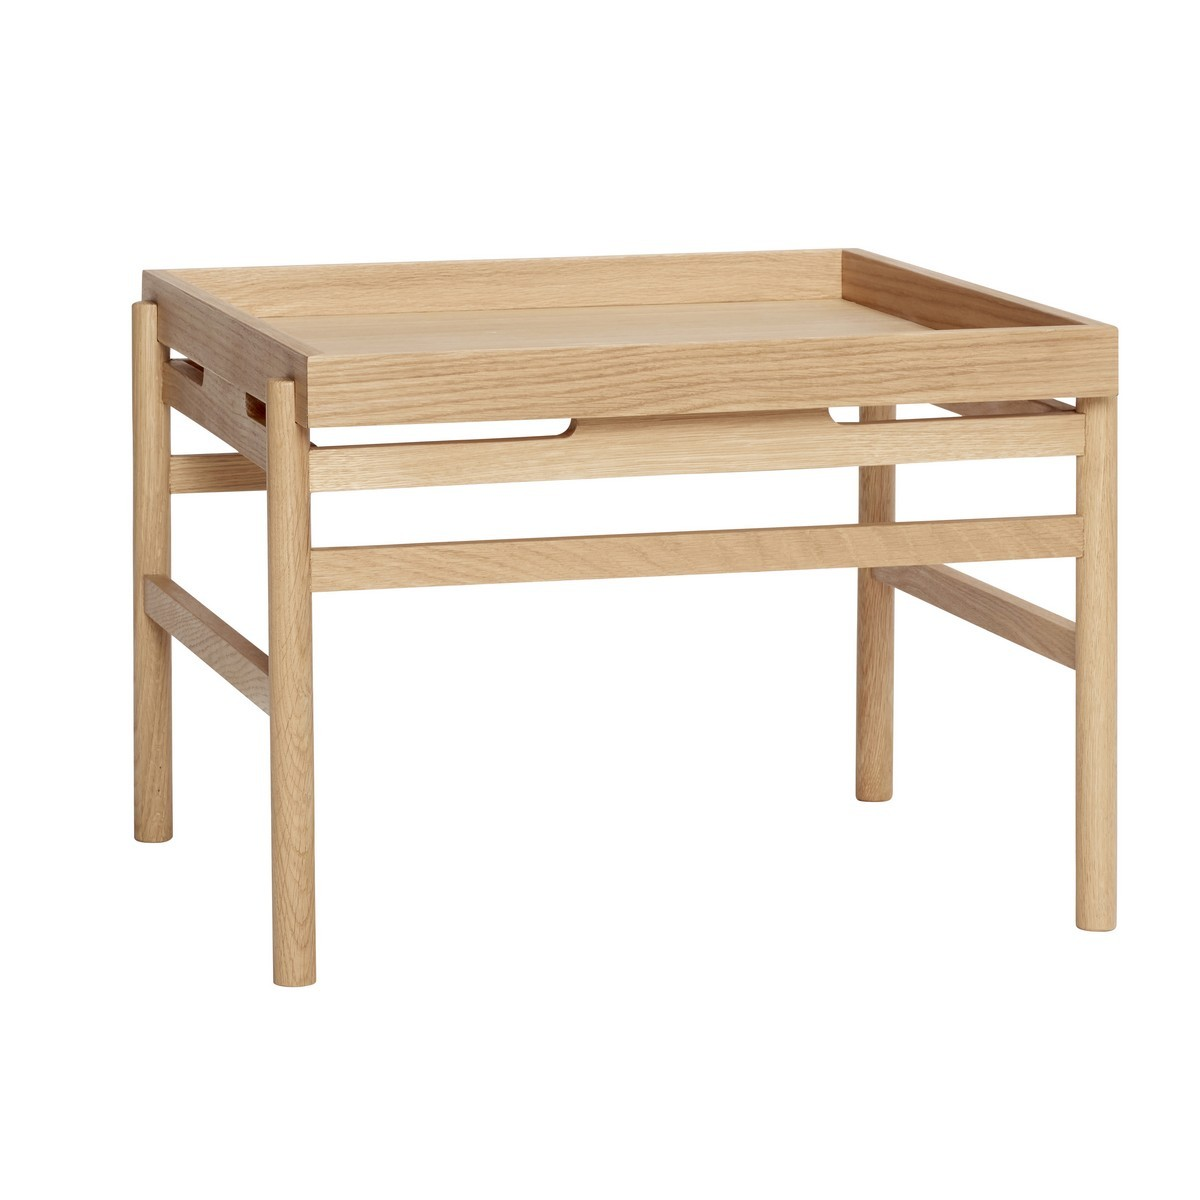 hubsch table basse carre style scandinave bois clair kdesign